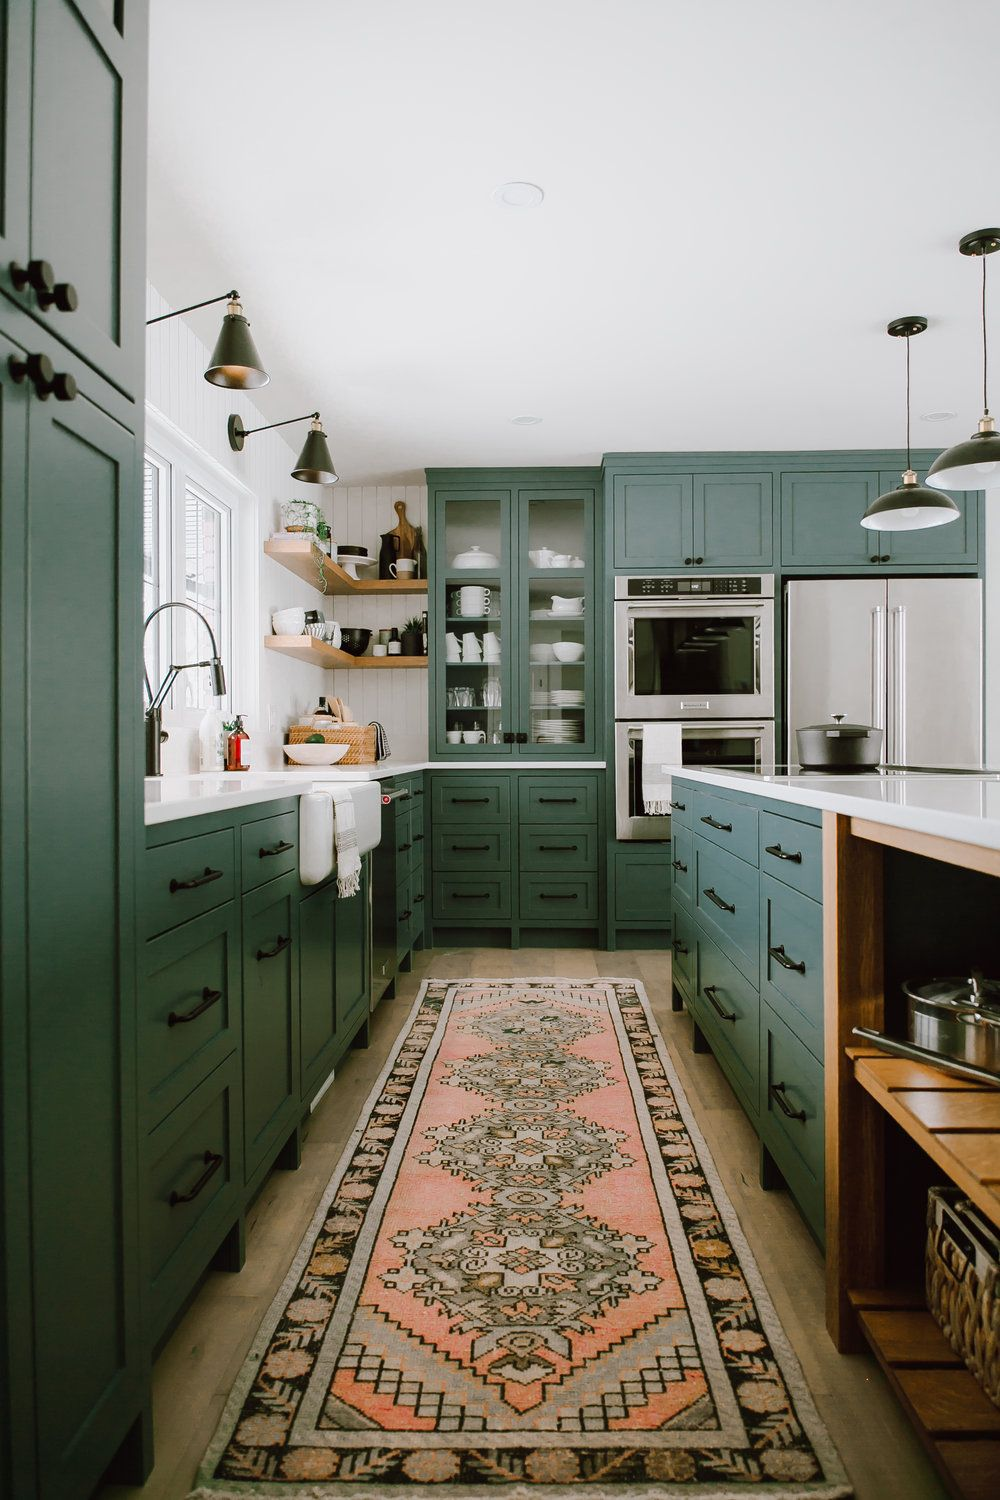 13 Envy Inducing Green Cabinets That Will Make Your Houseguests Jealous Hunker - Kitchen Convos: A cozinha é o melhor lugar para as conversas que precisamos ter